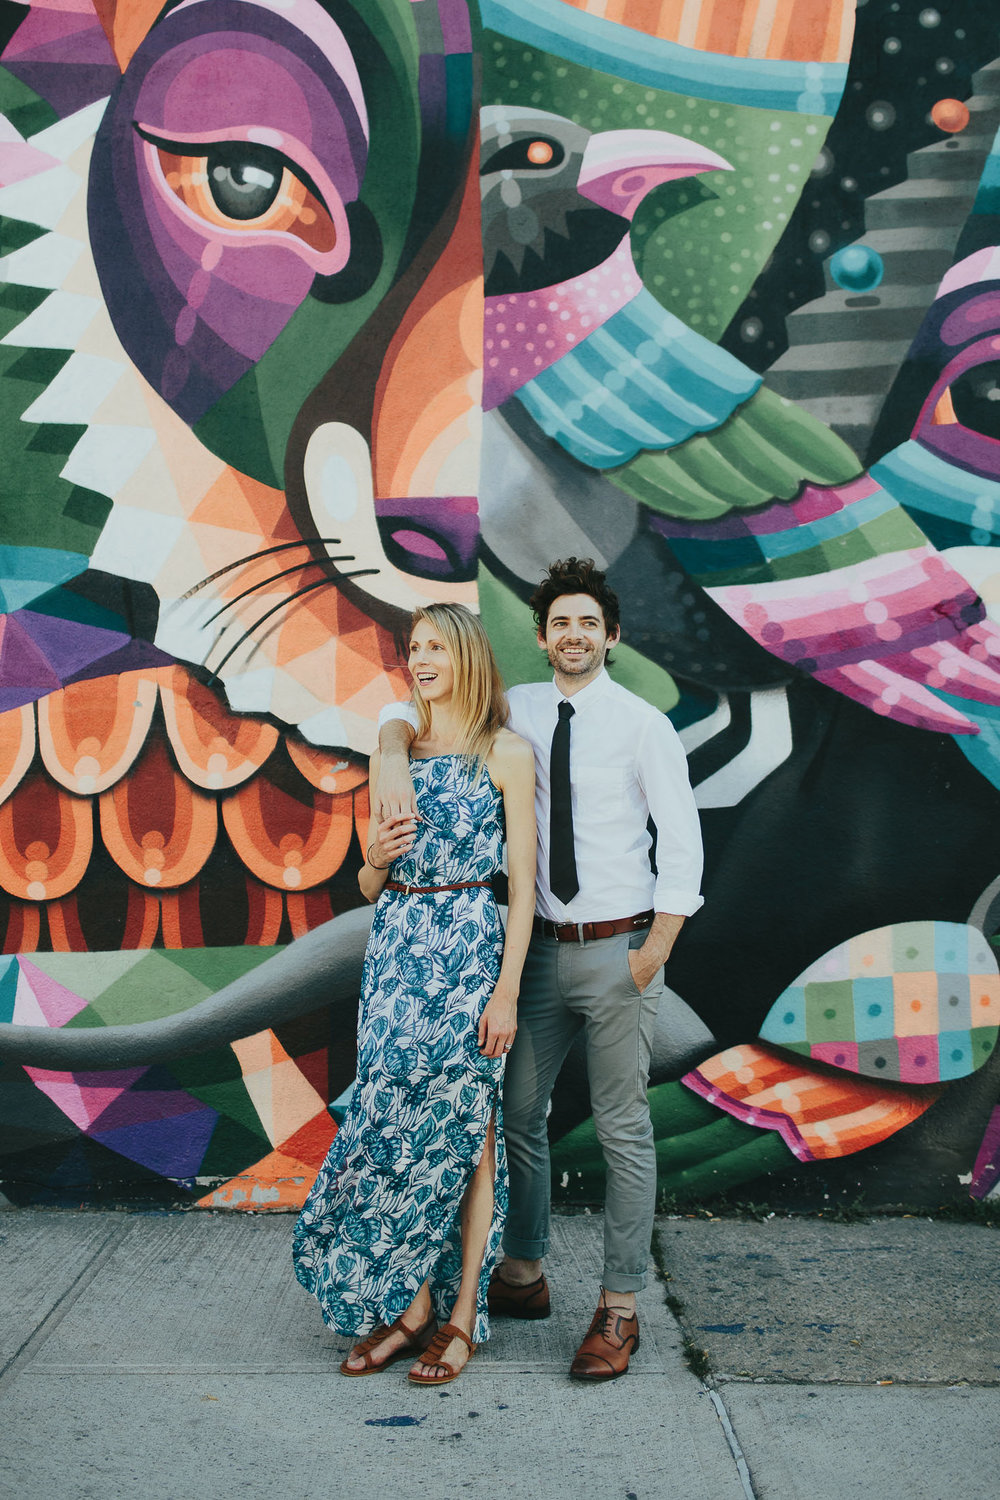 20+finch+and+oak+engagement+wedding+photographer+gold+coast+new+york+brooklyn.jpg